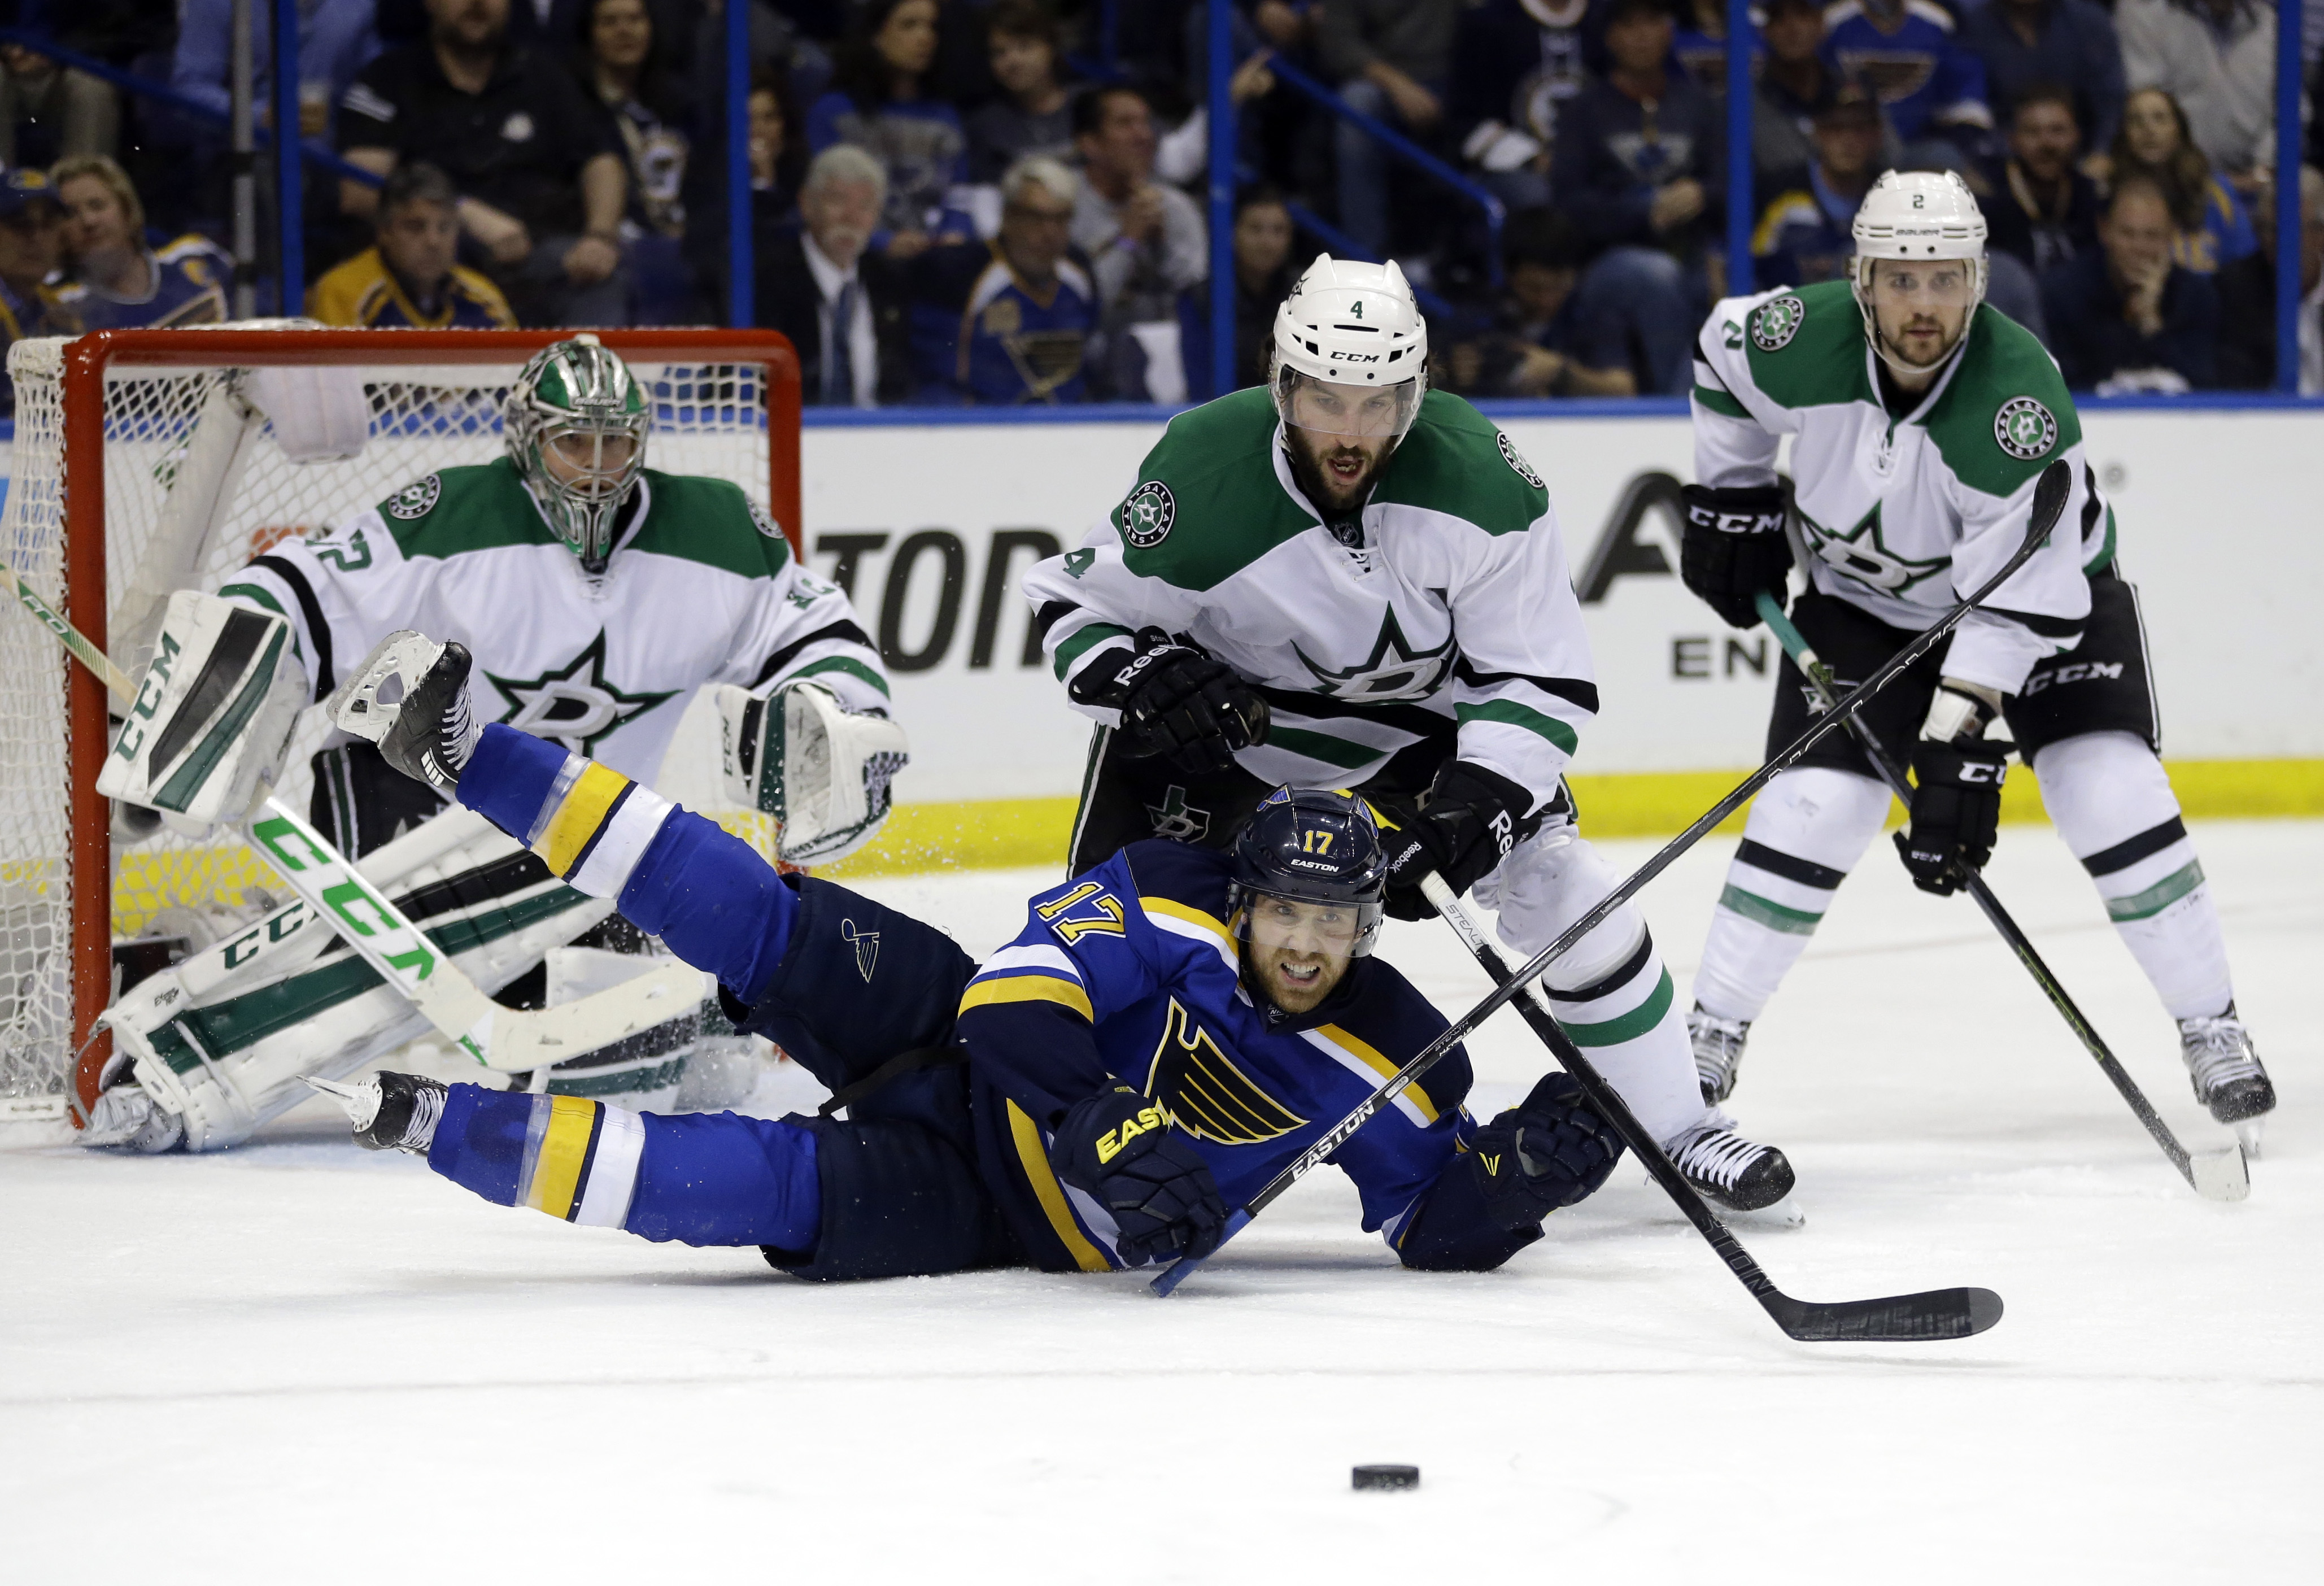 St. Louis Blues' Jaden Schwartz (17) falls while reaching for a puck as Dallas Stars goalie Kari Lehtonen, of Finland, Jason Demers (4) and Kris Russell, right, watch during the second period of Game 6 of the NHL hockey Stanley Cup Western Conference semi